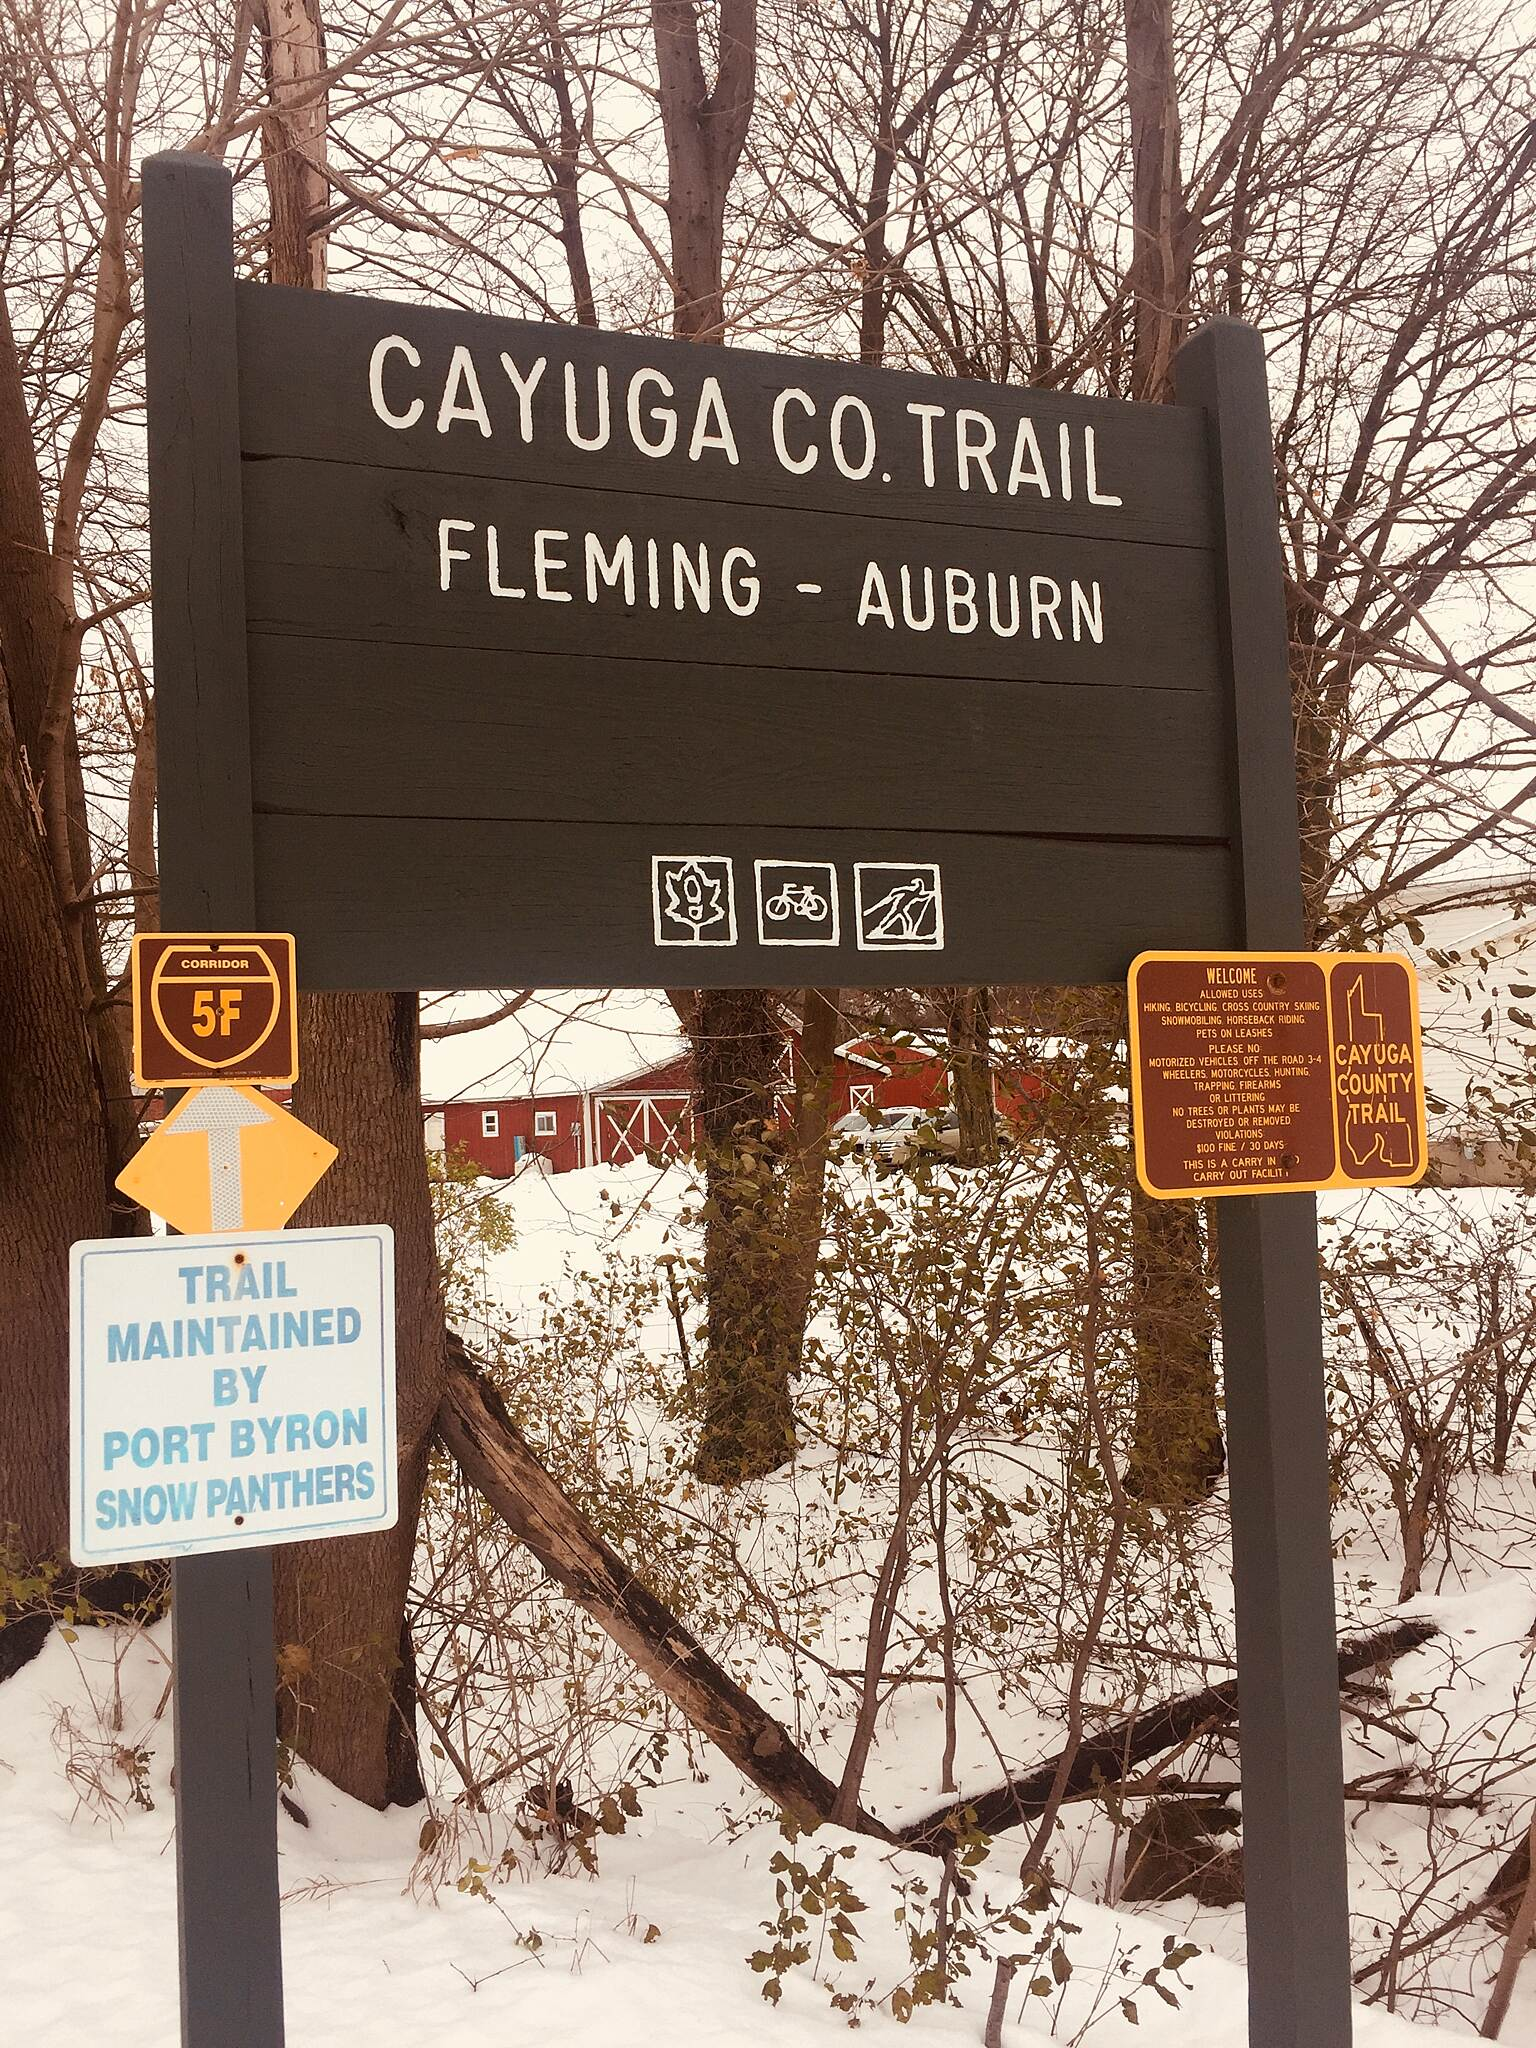 Auburn-Fleming Trail Snowshoeing November 17, 2018 Trail Head on State St.